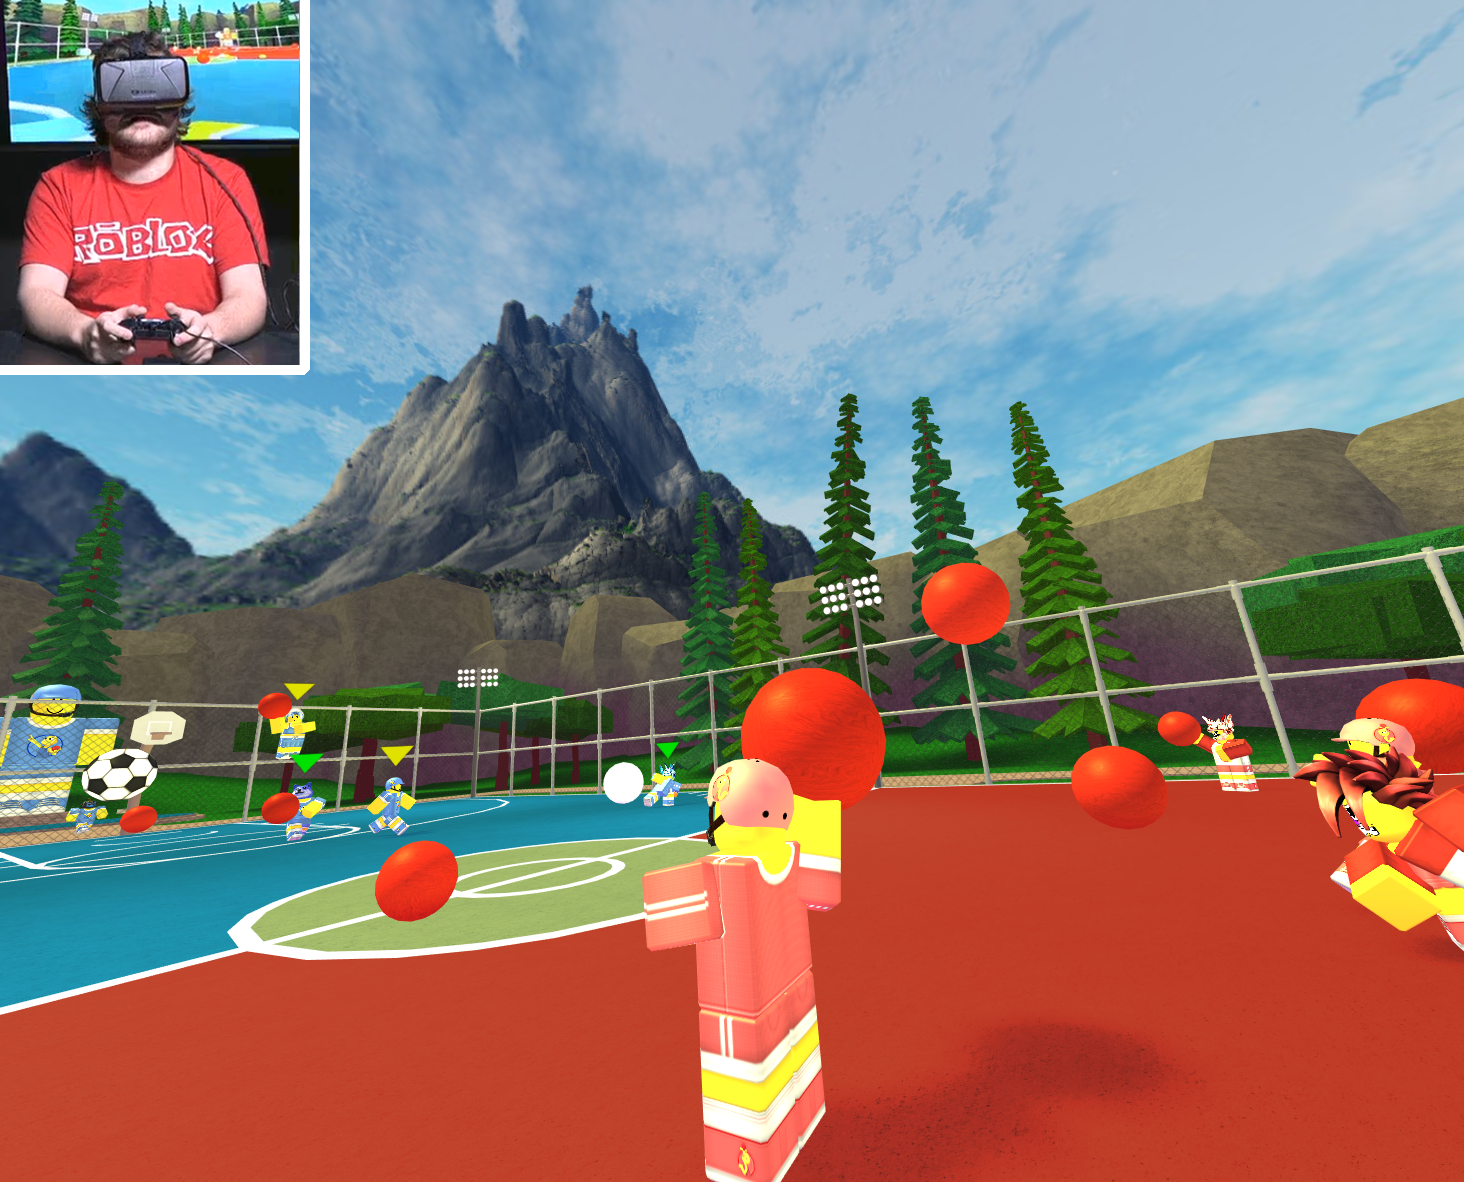 Oculus Vr S Rift Headset Gets Roblox S Massive Player Created